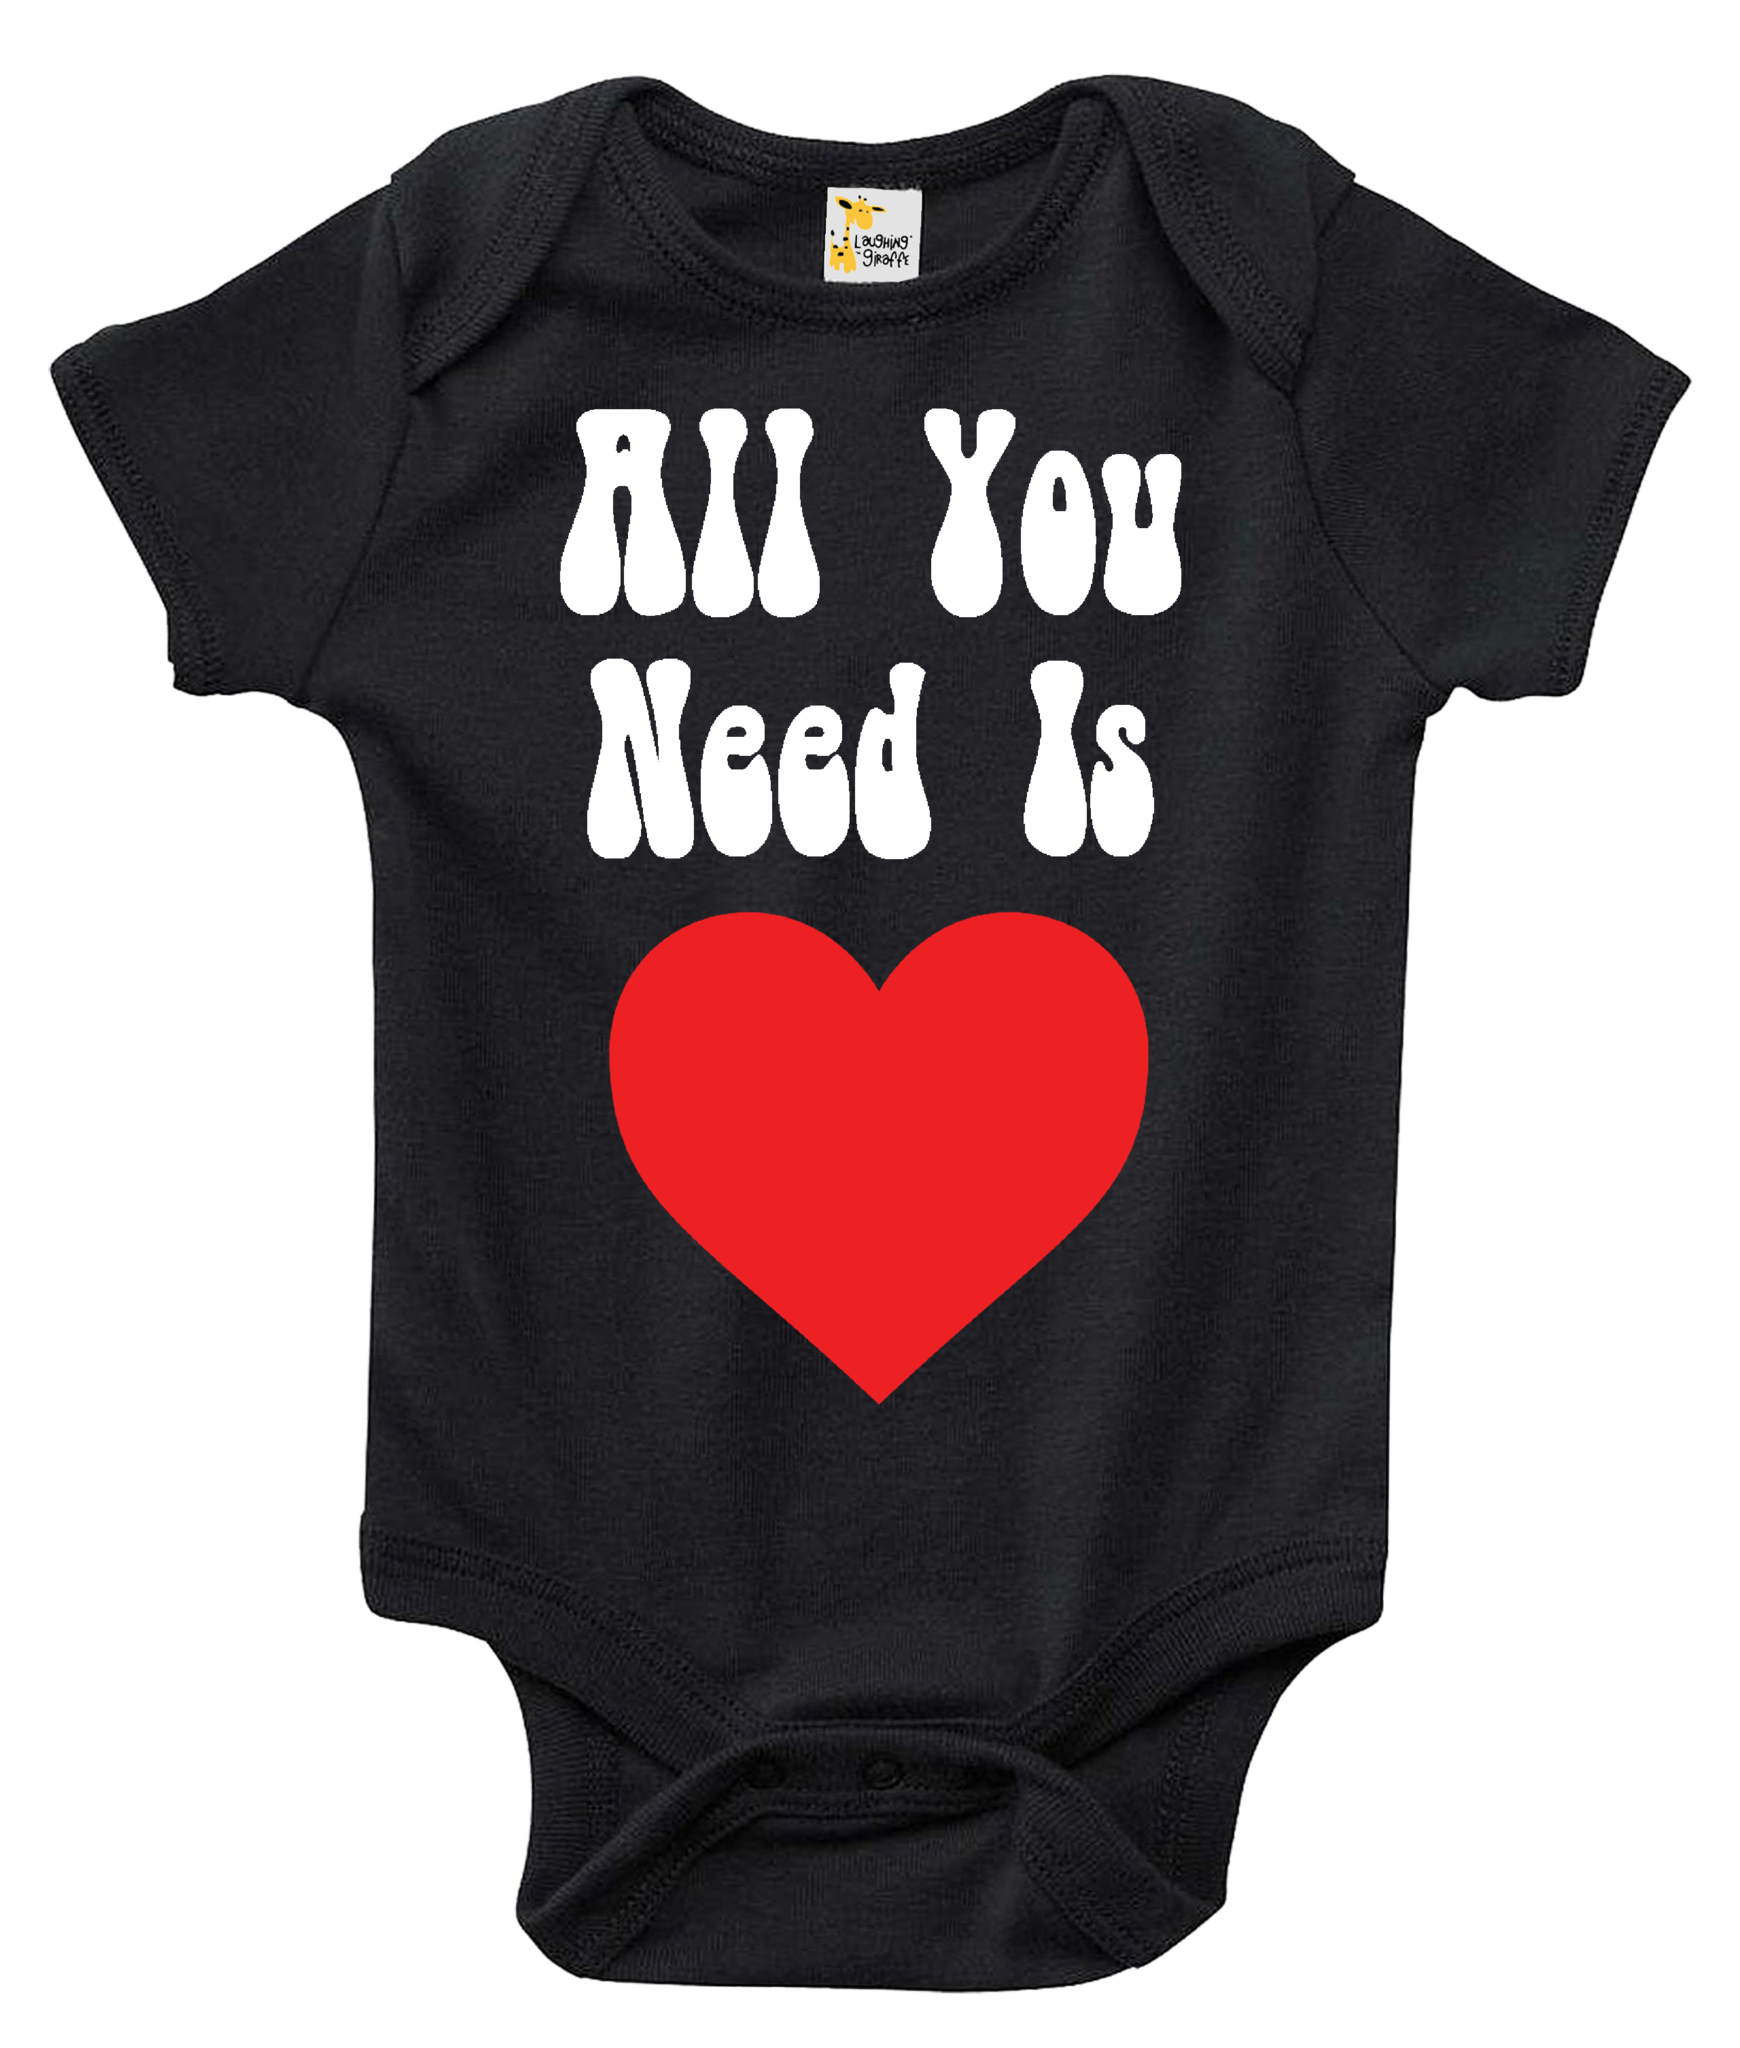 All You Need Is Love Baby One-piece Bodysuit